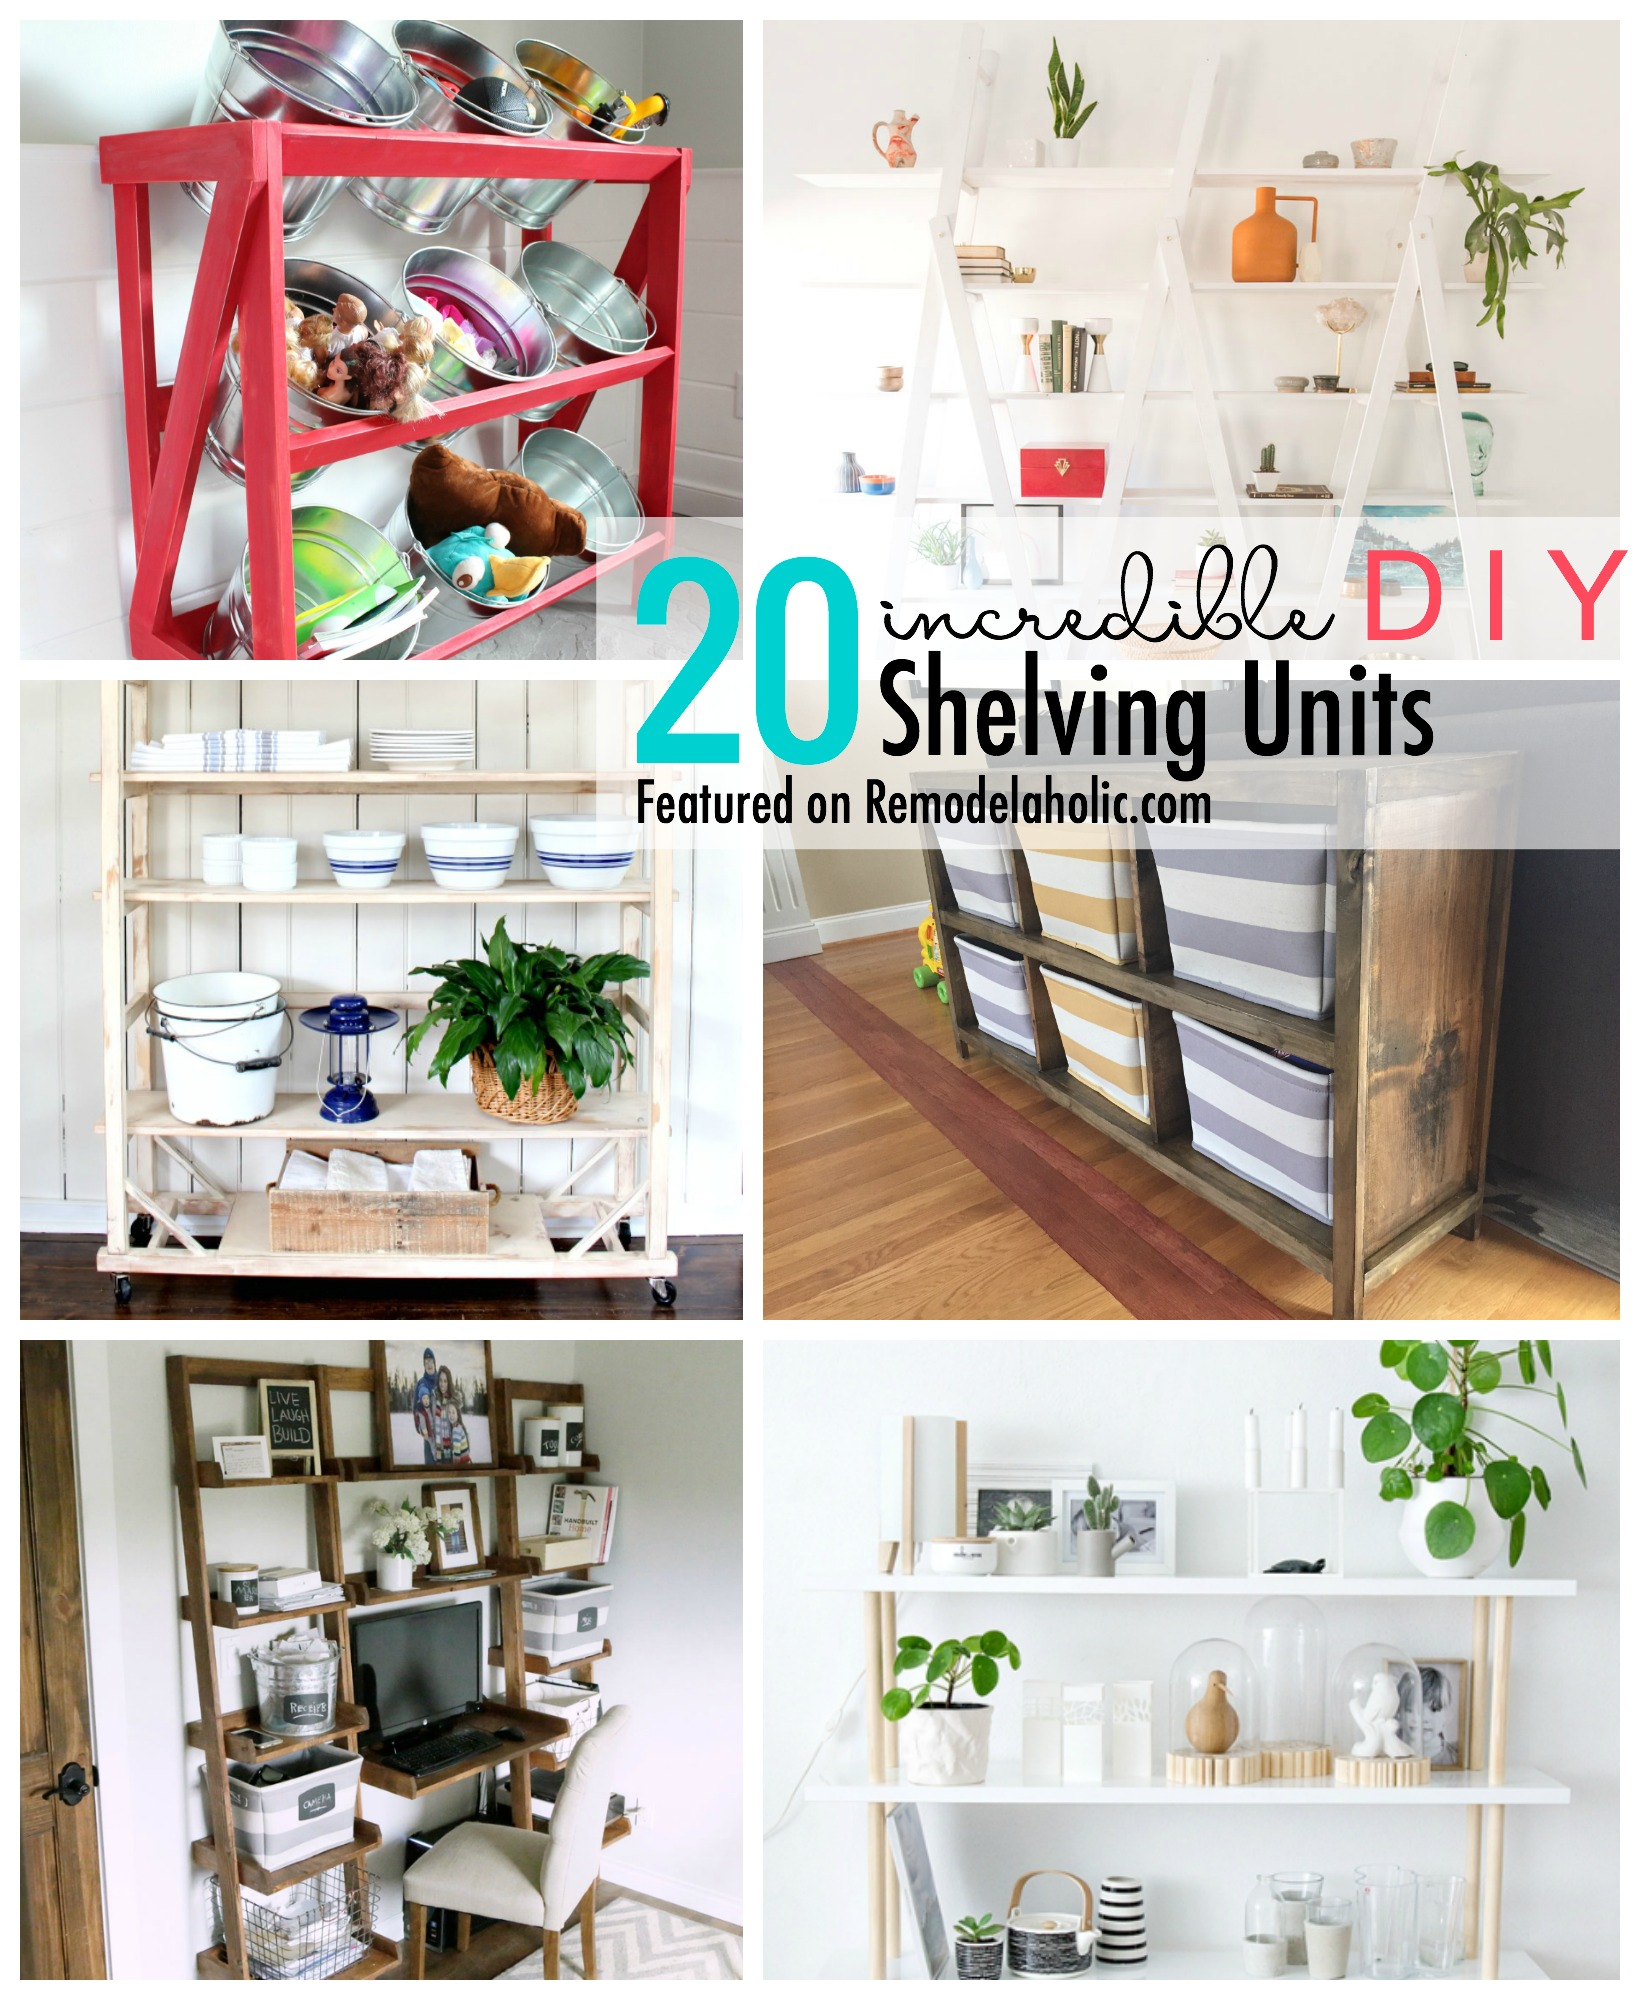 Remodelaholic 20 incredible diy shelving units add some storage space with a wall shelving unite we are sharing 20 incredible diy solutioingenieria Gallery